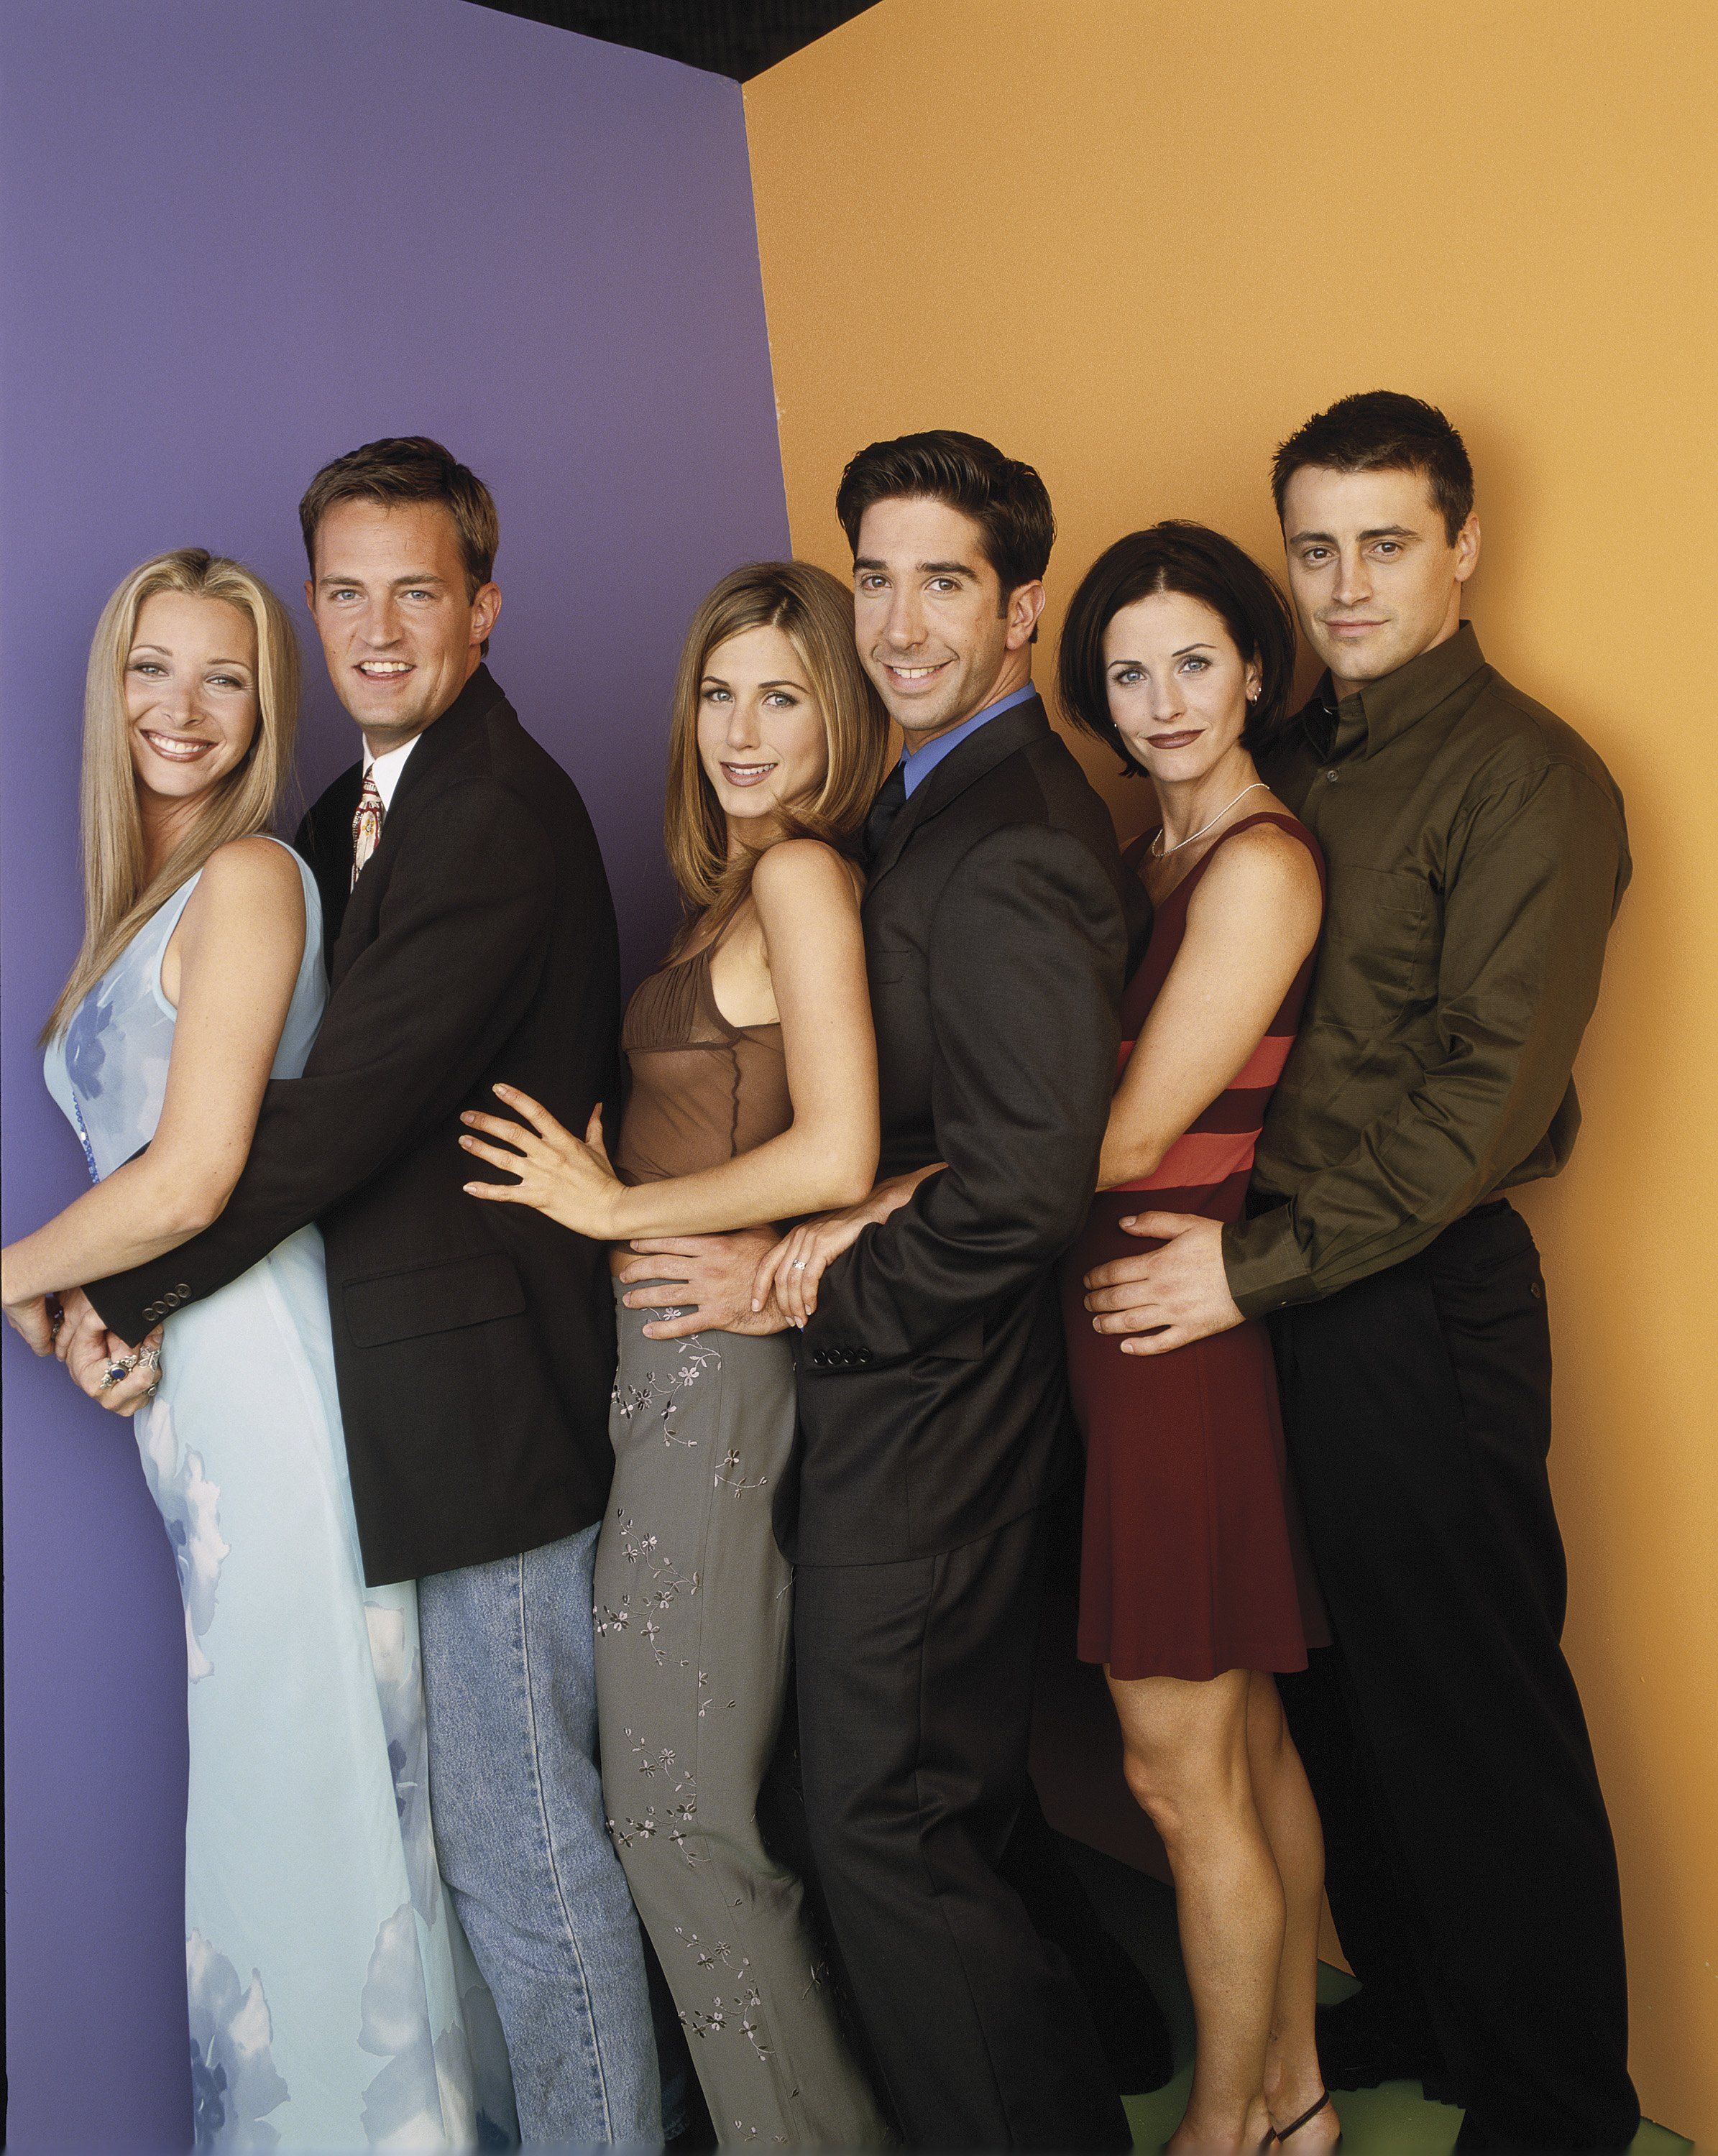 Here's What 'Friends' Co-Creator Marta Kauffman Says About the Possible HBO Max Reunion